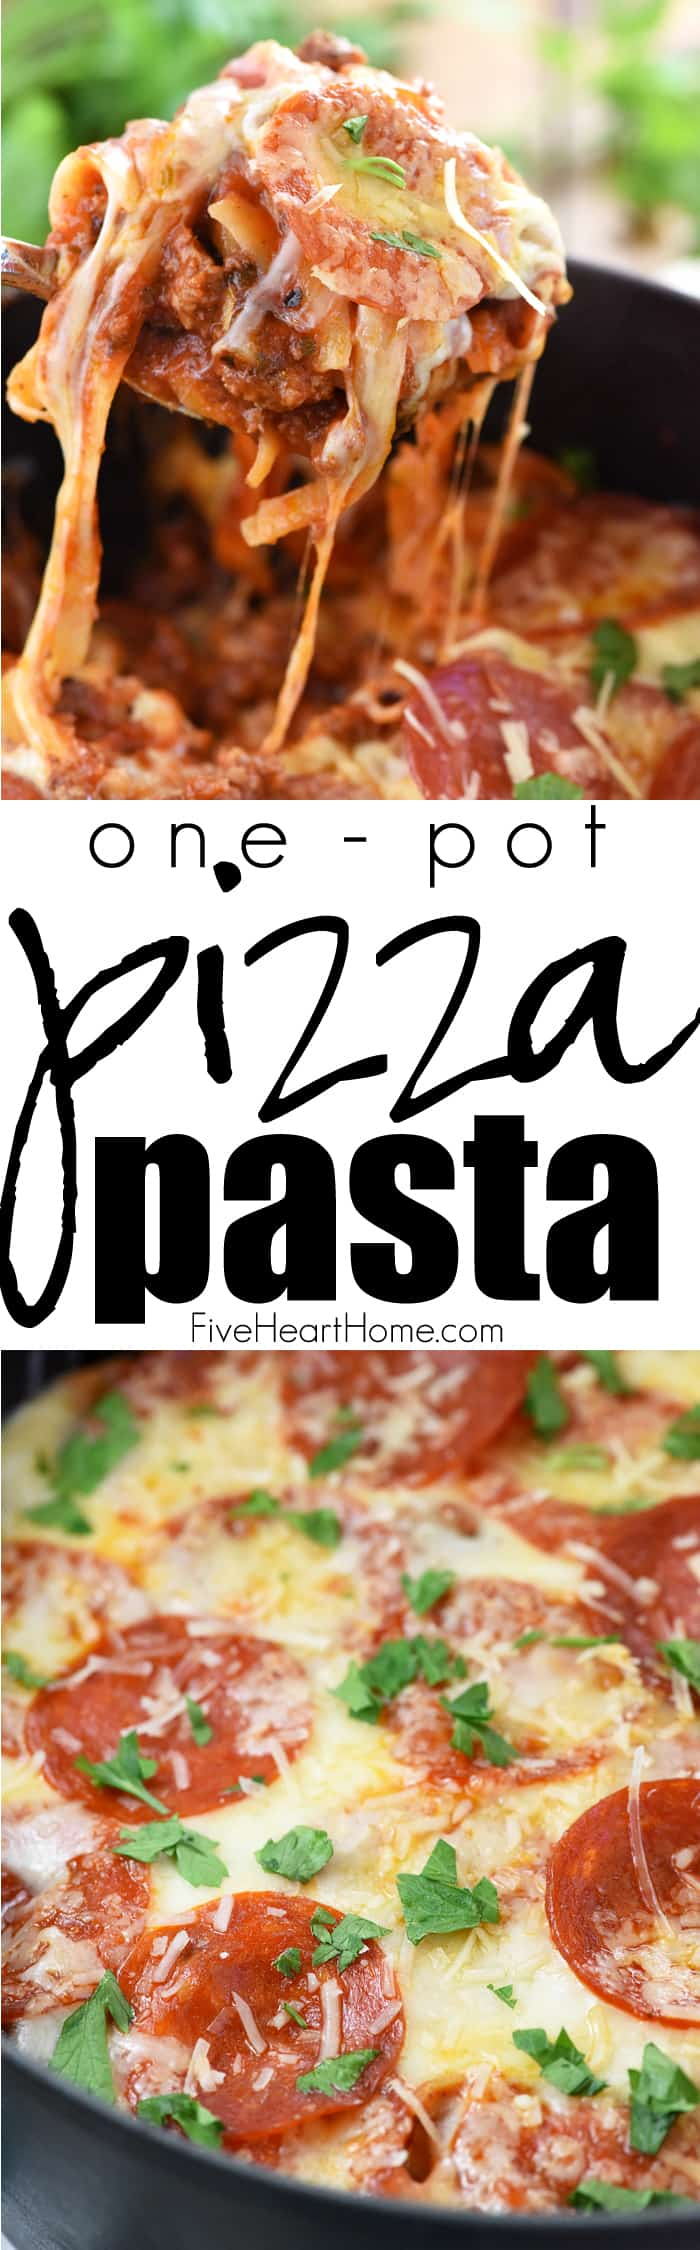 One-Pot Pizza Pasta ~ an easy, cheesy, comforting dinner recipe loaded with flavor thanks to all of your favorite pizza toppings...and as a bonus, everything gets cooked in the same pot! | FiveHeartHome.com